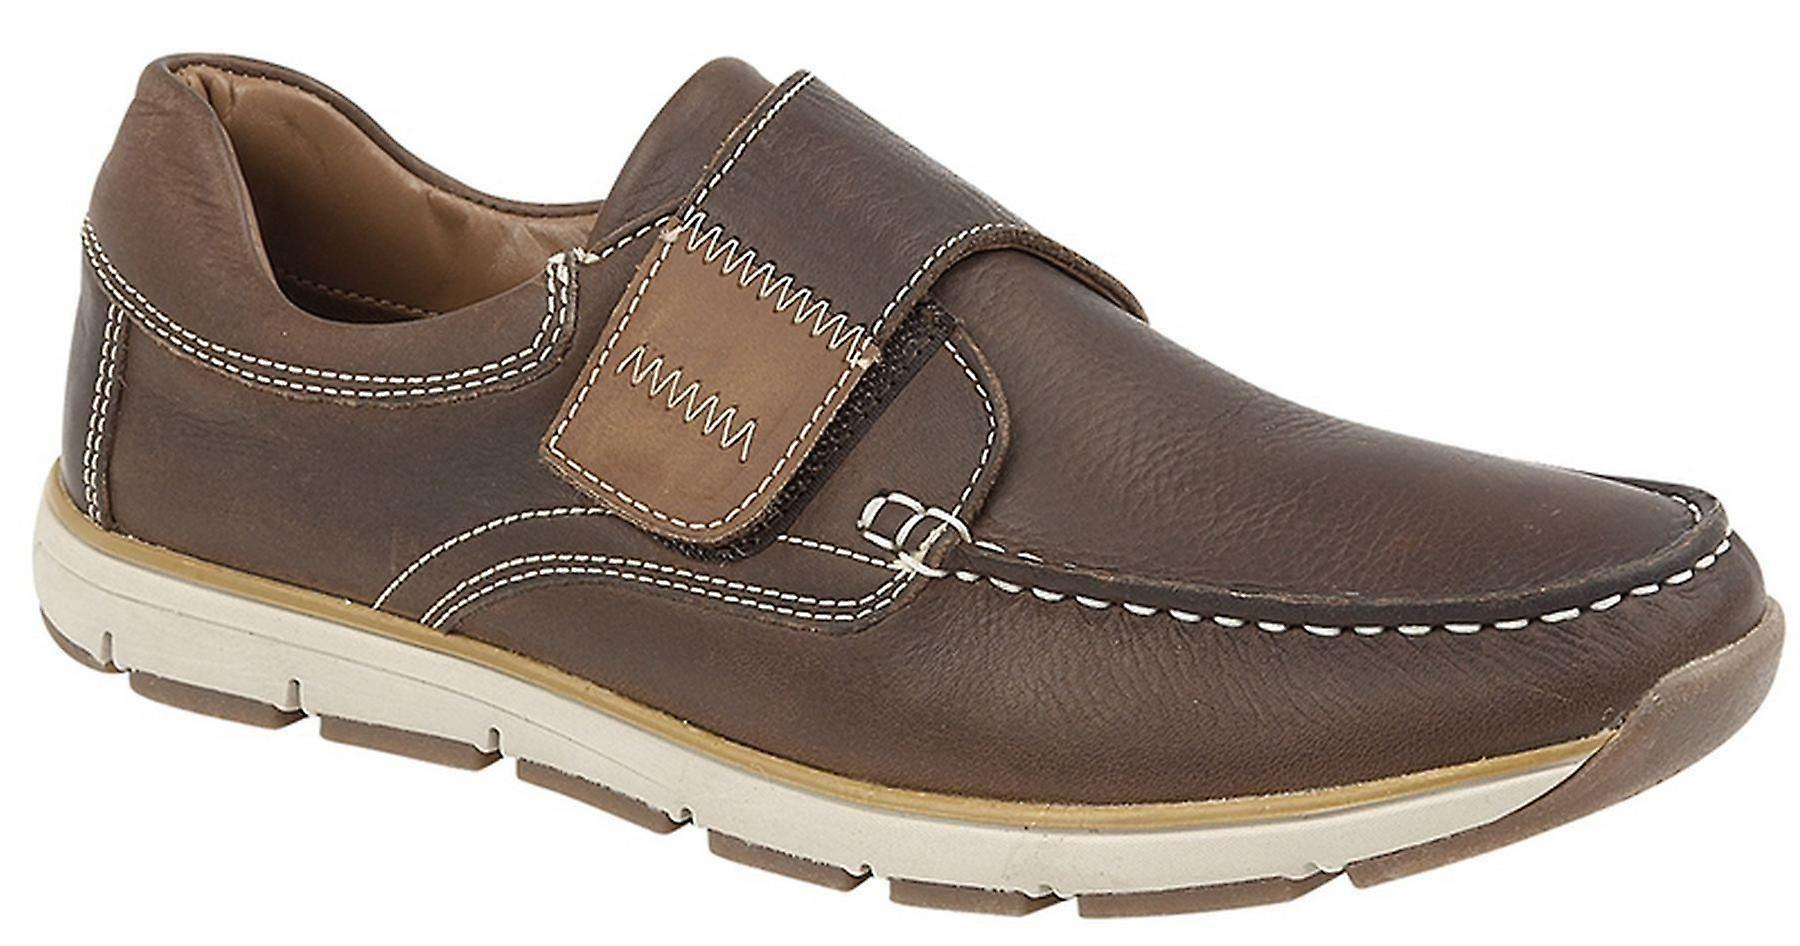 Touch Casual Moccasin Leather Mens Lightweight Apron Fastening Boat Shoes 0qxtTBw